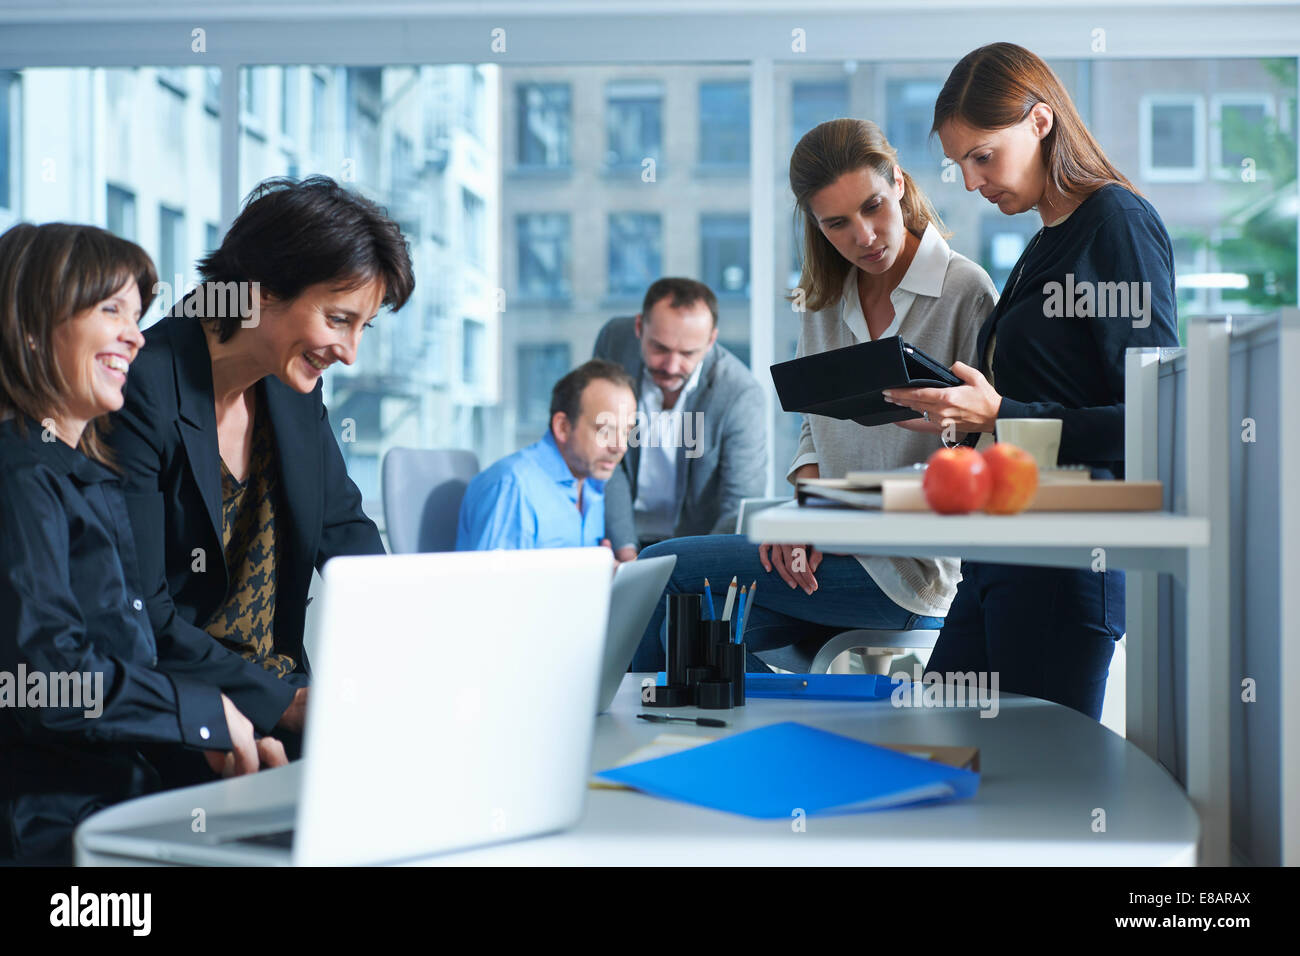 Six businesswomen and men working in busy office - Stock Image